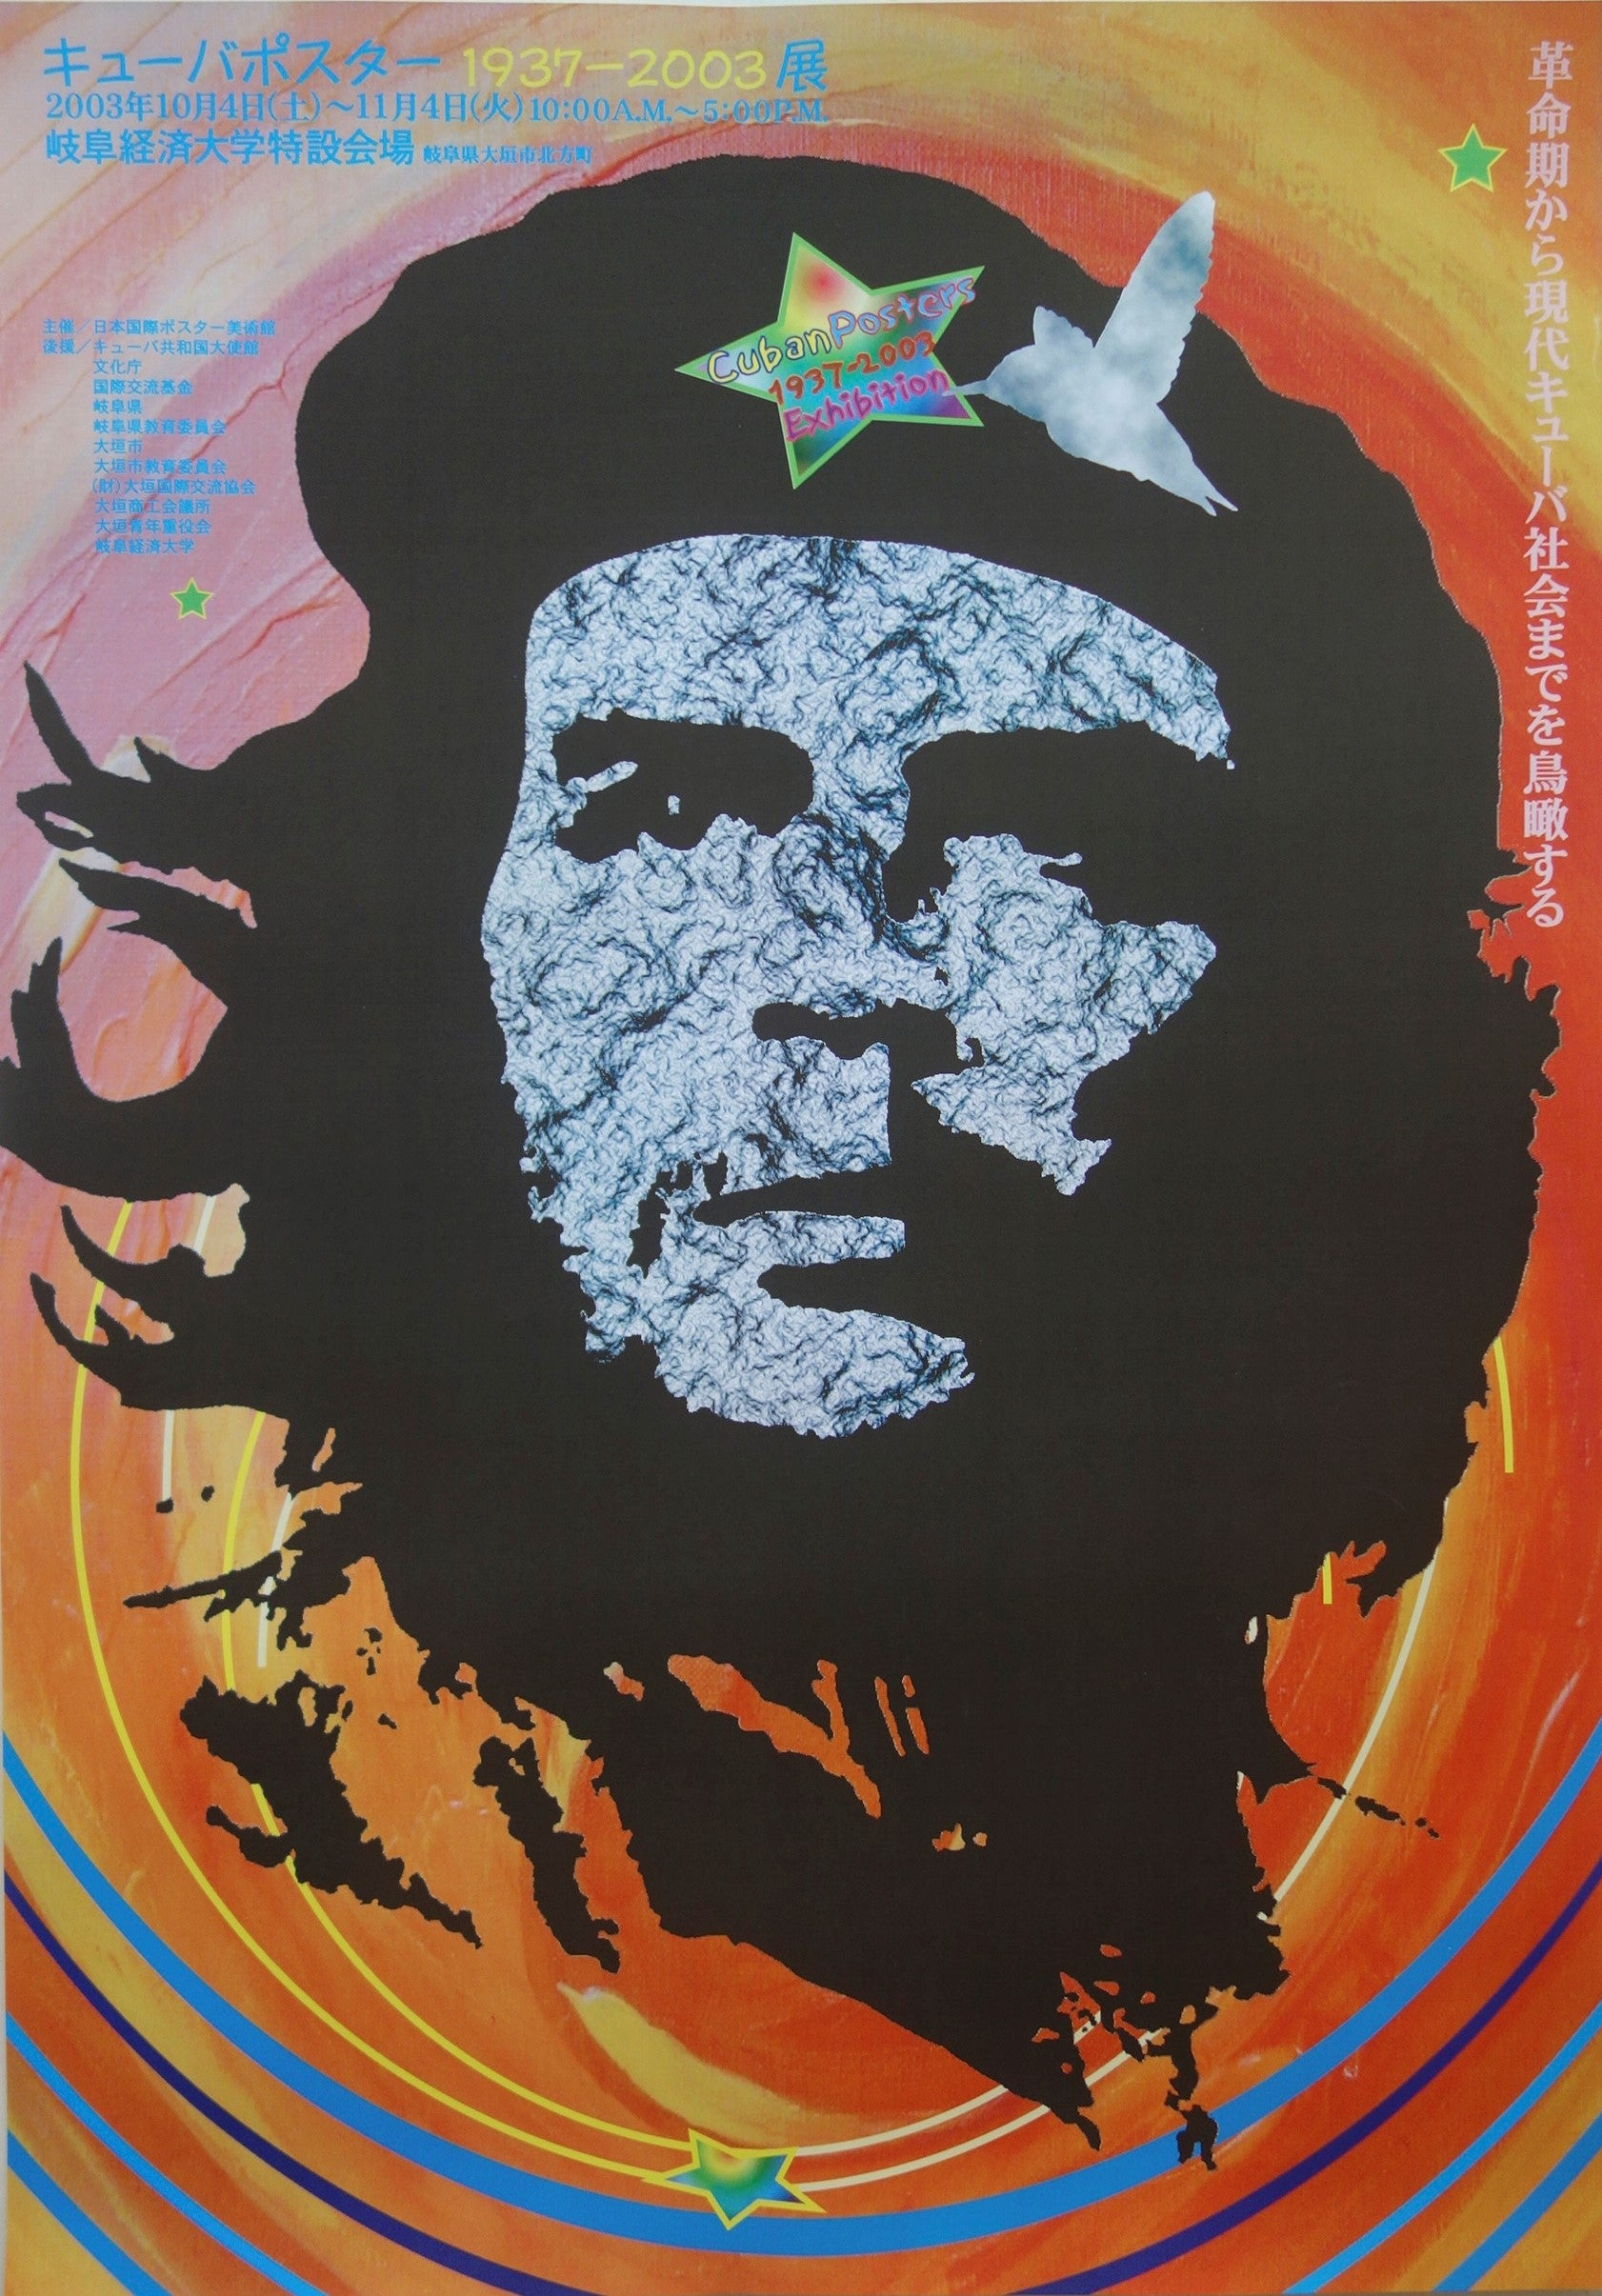 Cuban Poster 1937-2003 Exhibition